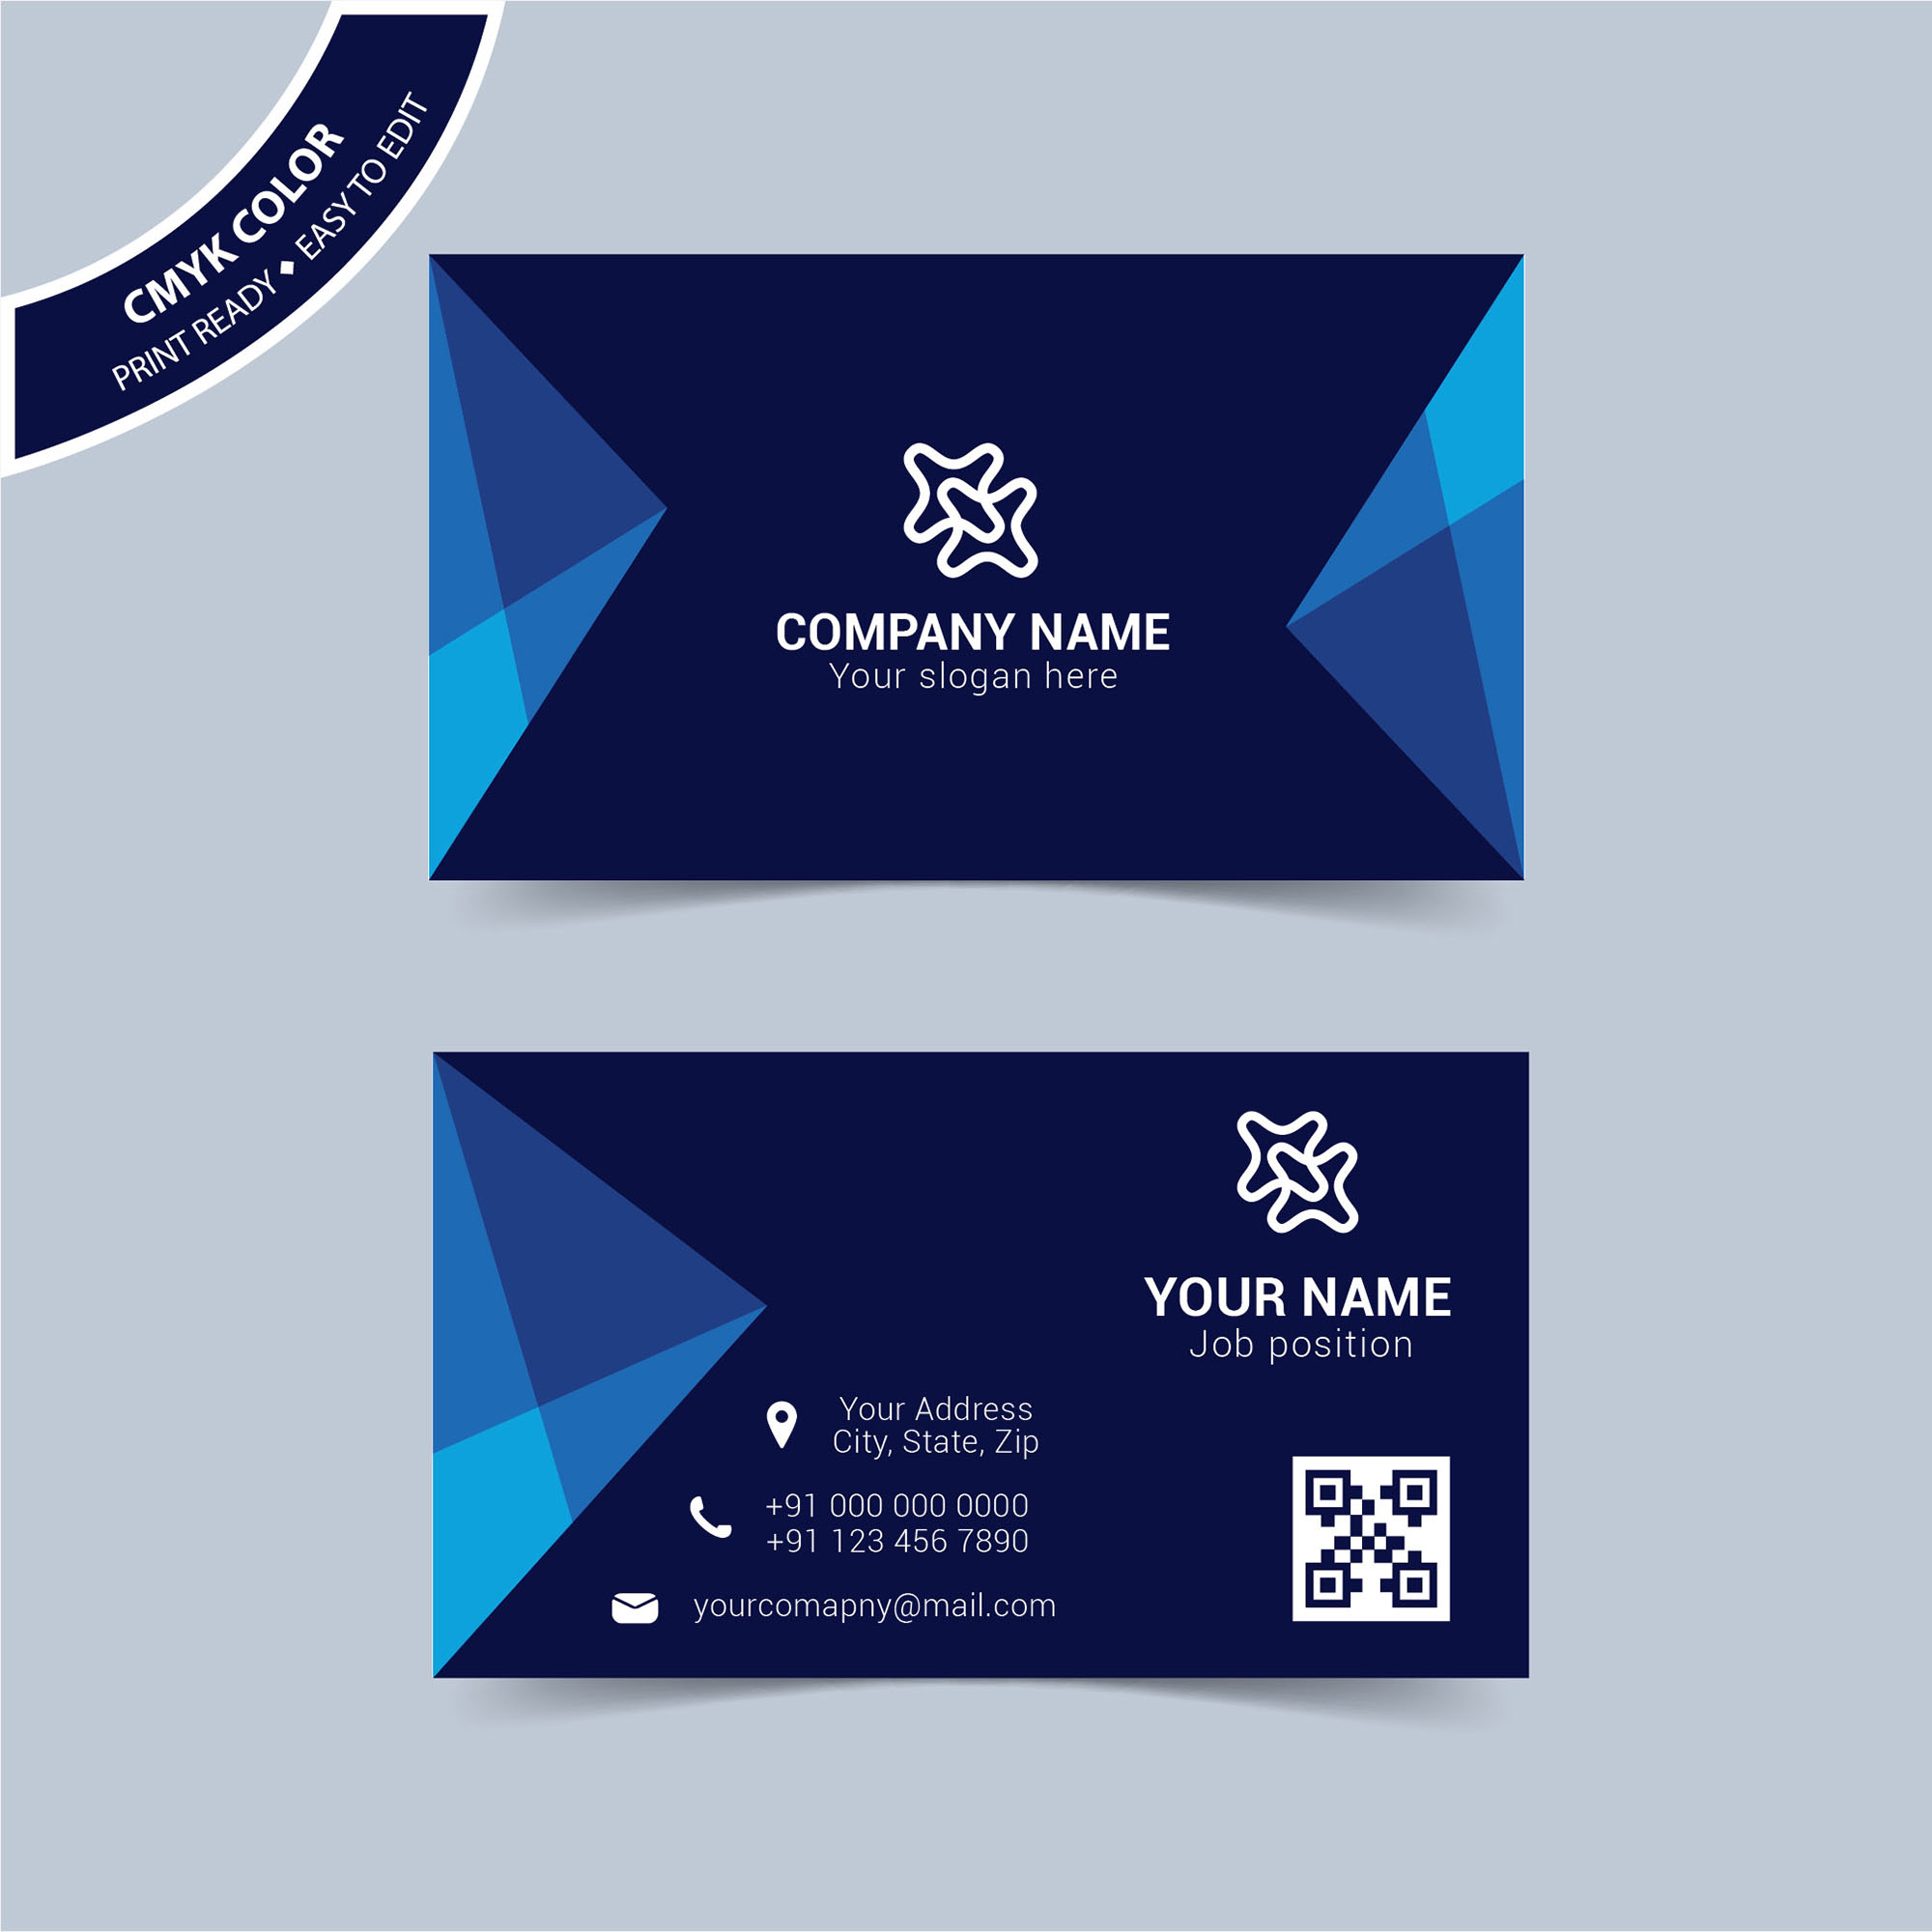 templates for business cards images professional report